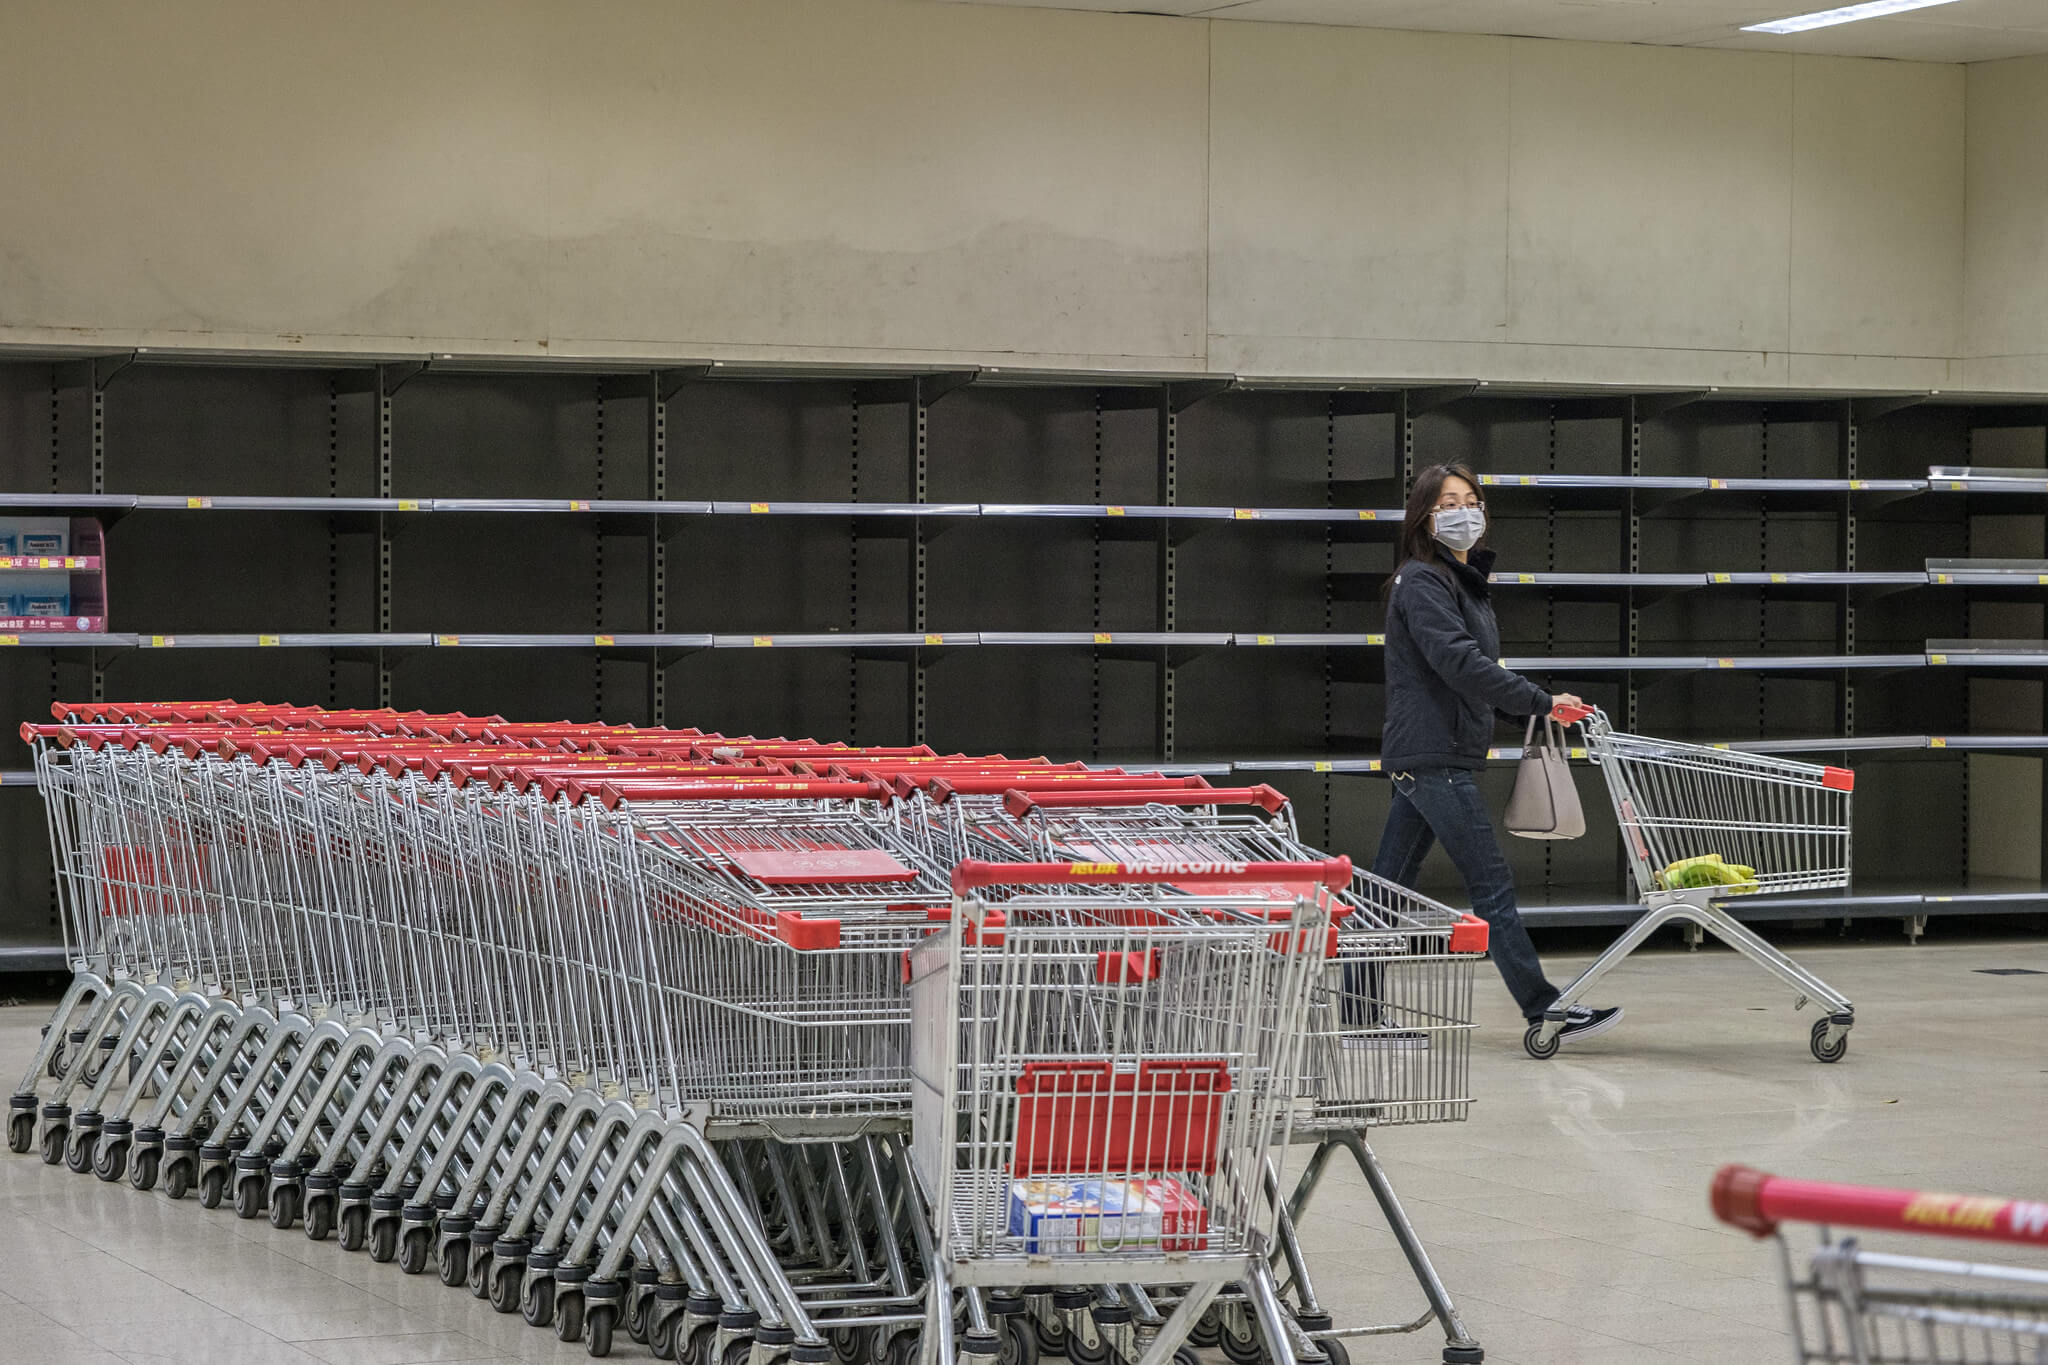 A supermarket in the city of Wuhan, almost empty due to the corona-crisis. © Studio Incendo/Flickr